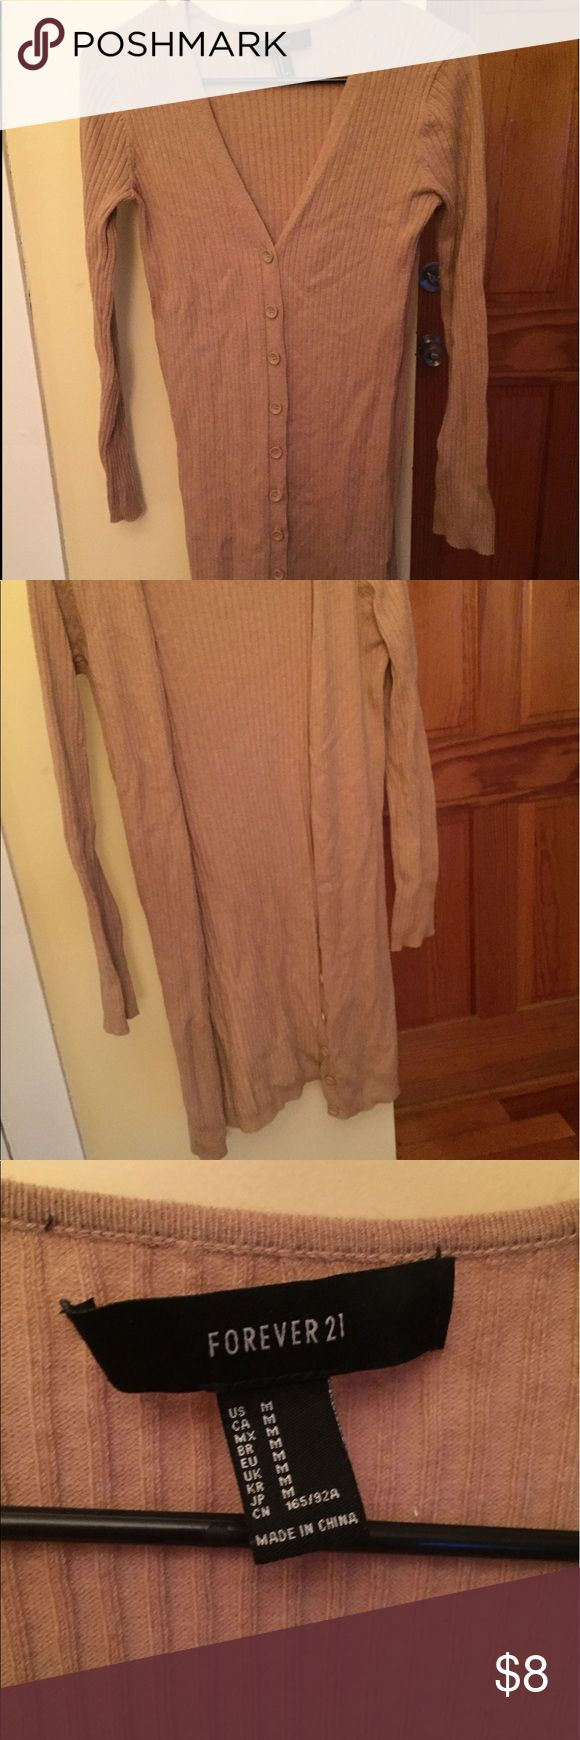 F21 CAMEL CARDIGAN Ribbed  camel long sleeve cardigan// also can be worn as a dress. Small stain near one of the buttons, pics as requested! Wrinkly because it's been sitting in my draw for so long 😂 Forever 21 Sweaters Cardigans